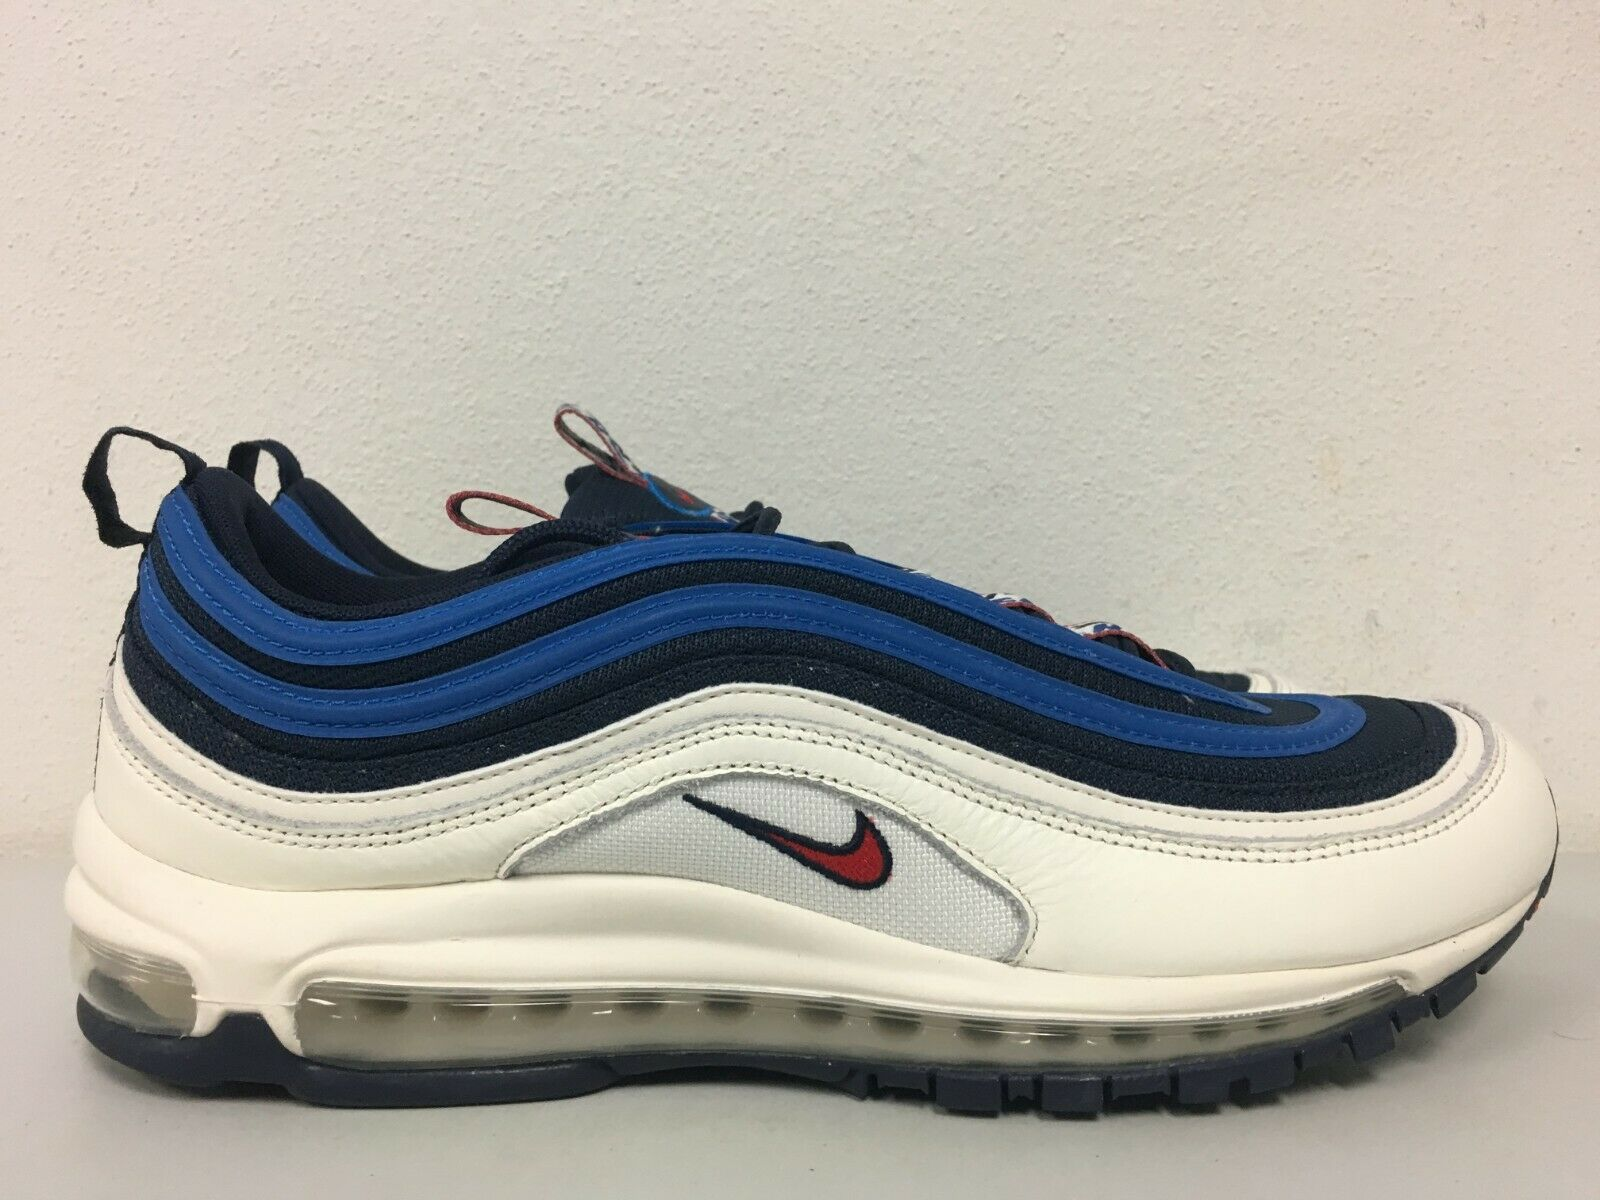 info for 2d4c4 d9576 Nike Air Max 97 SE Obsidian University Red Sail Aq4126-400 Size 13 ...